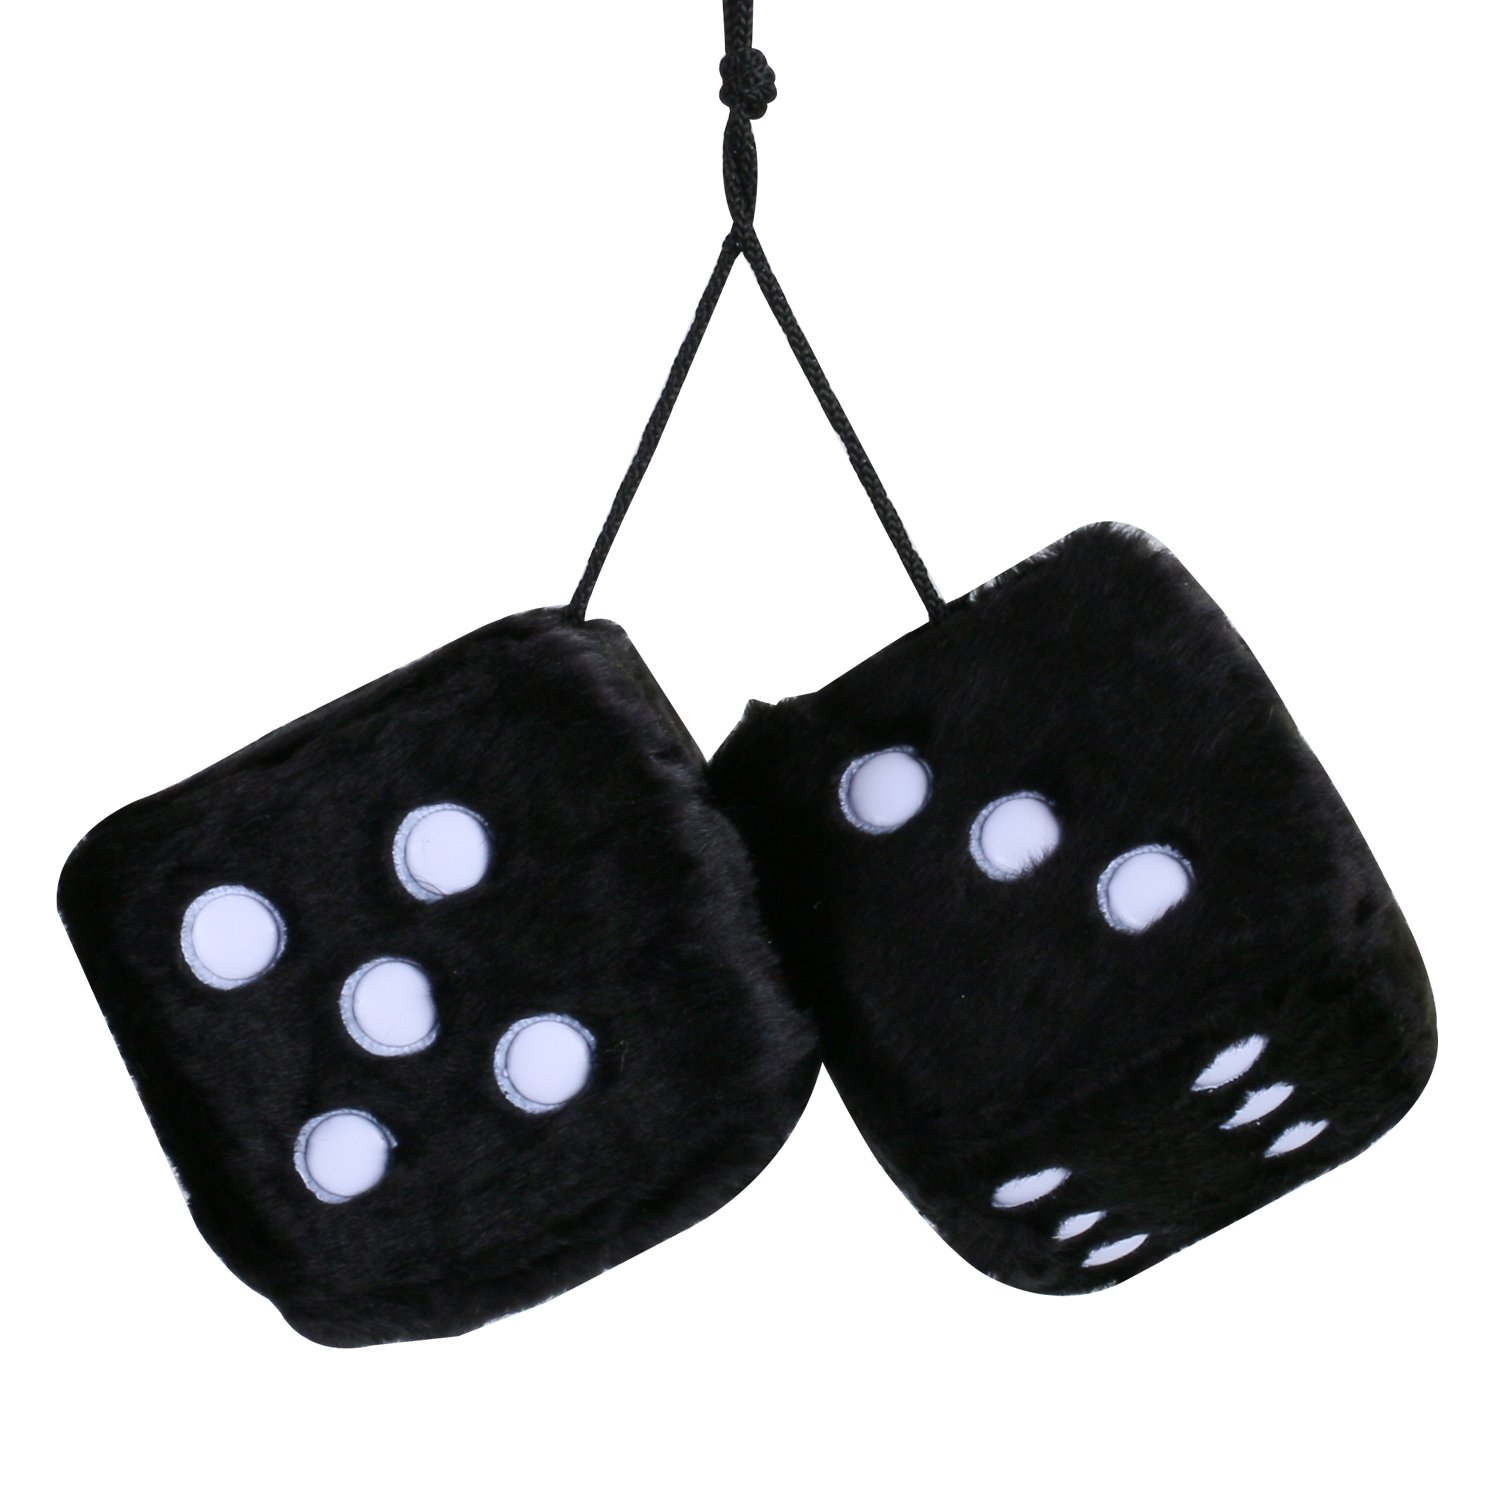 MRCARTOOL 3 inch Pair of Retro Square Mirror Hanging Dice Couple Fuzzy Plush Dice with Dots for Car Interior Ornament Decoration Black